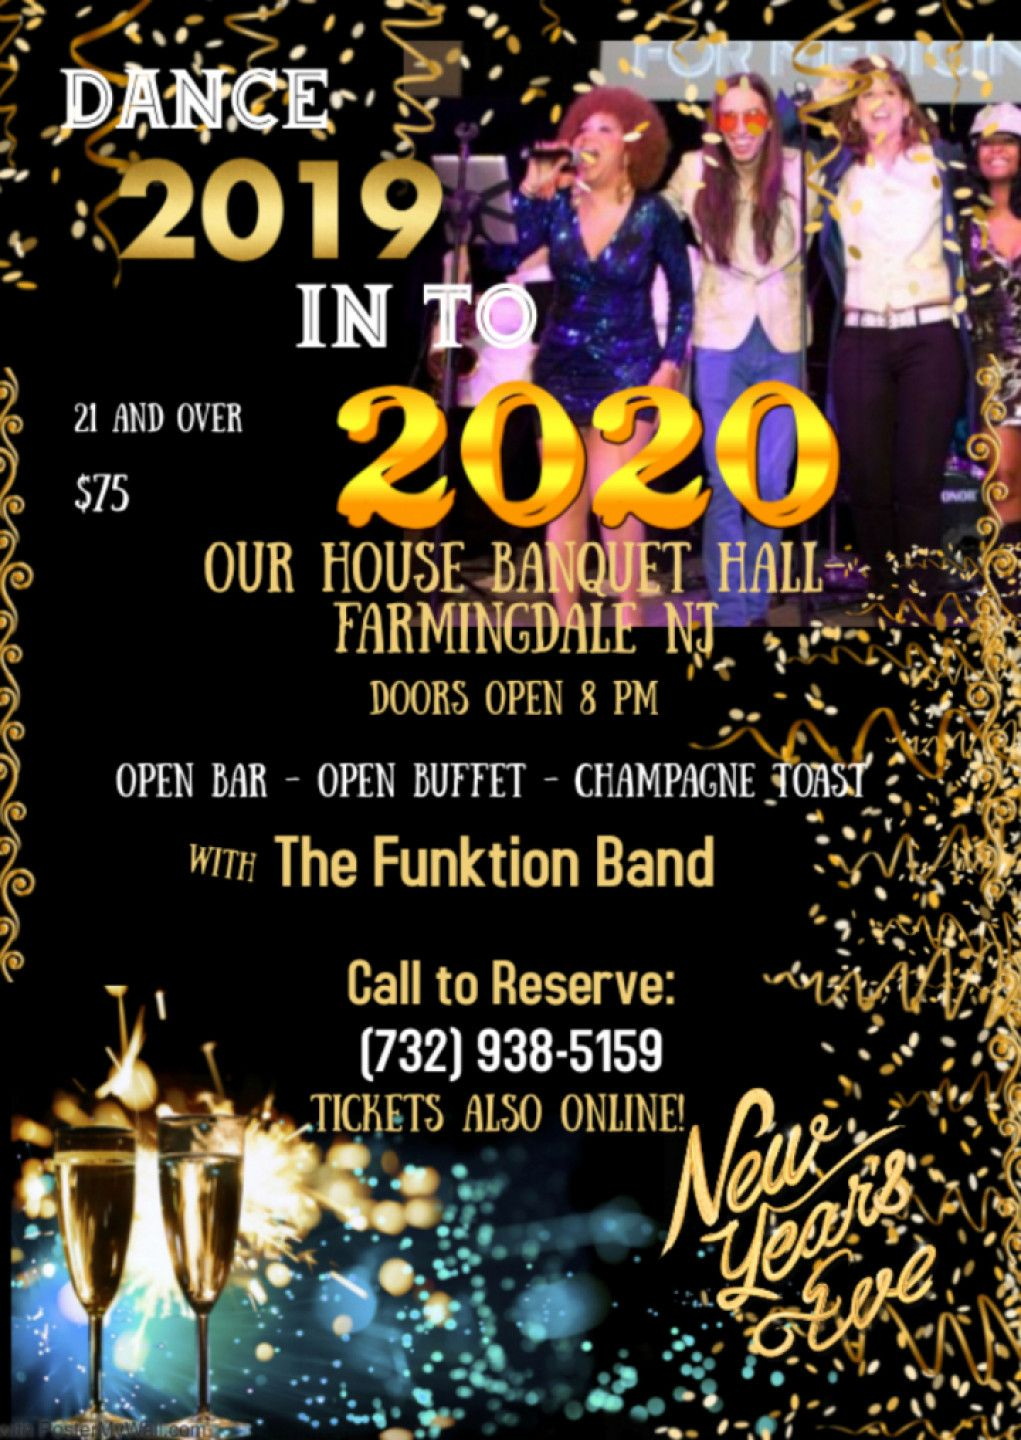 New Year's Eve Gala at Our House Banquet Hall with The